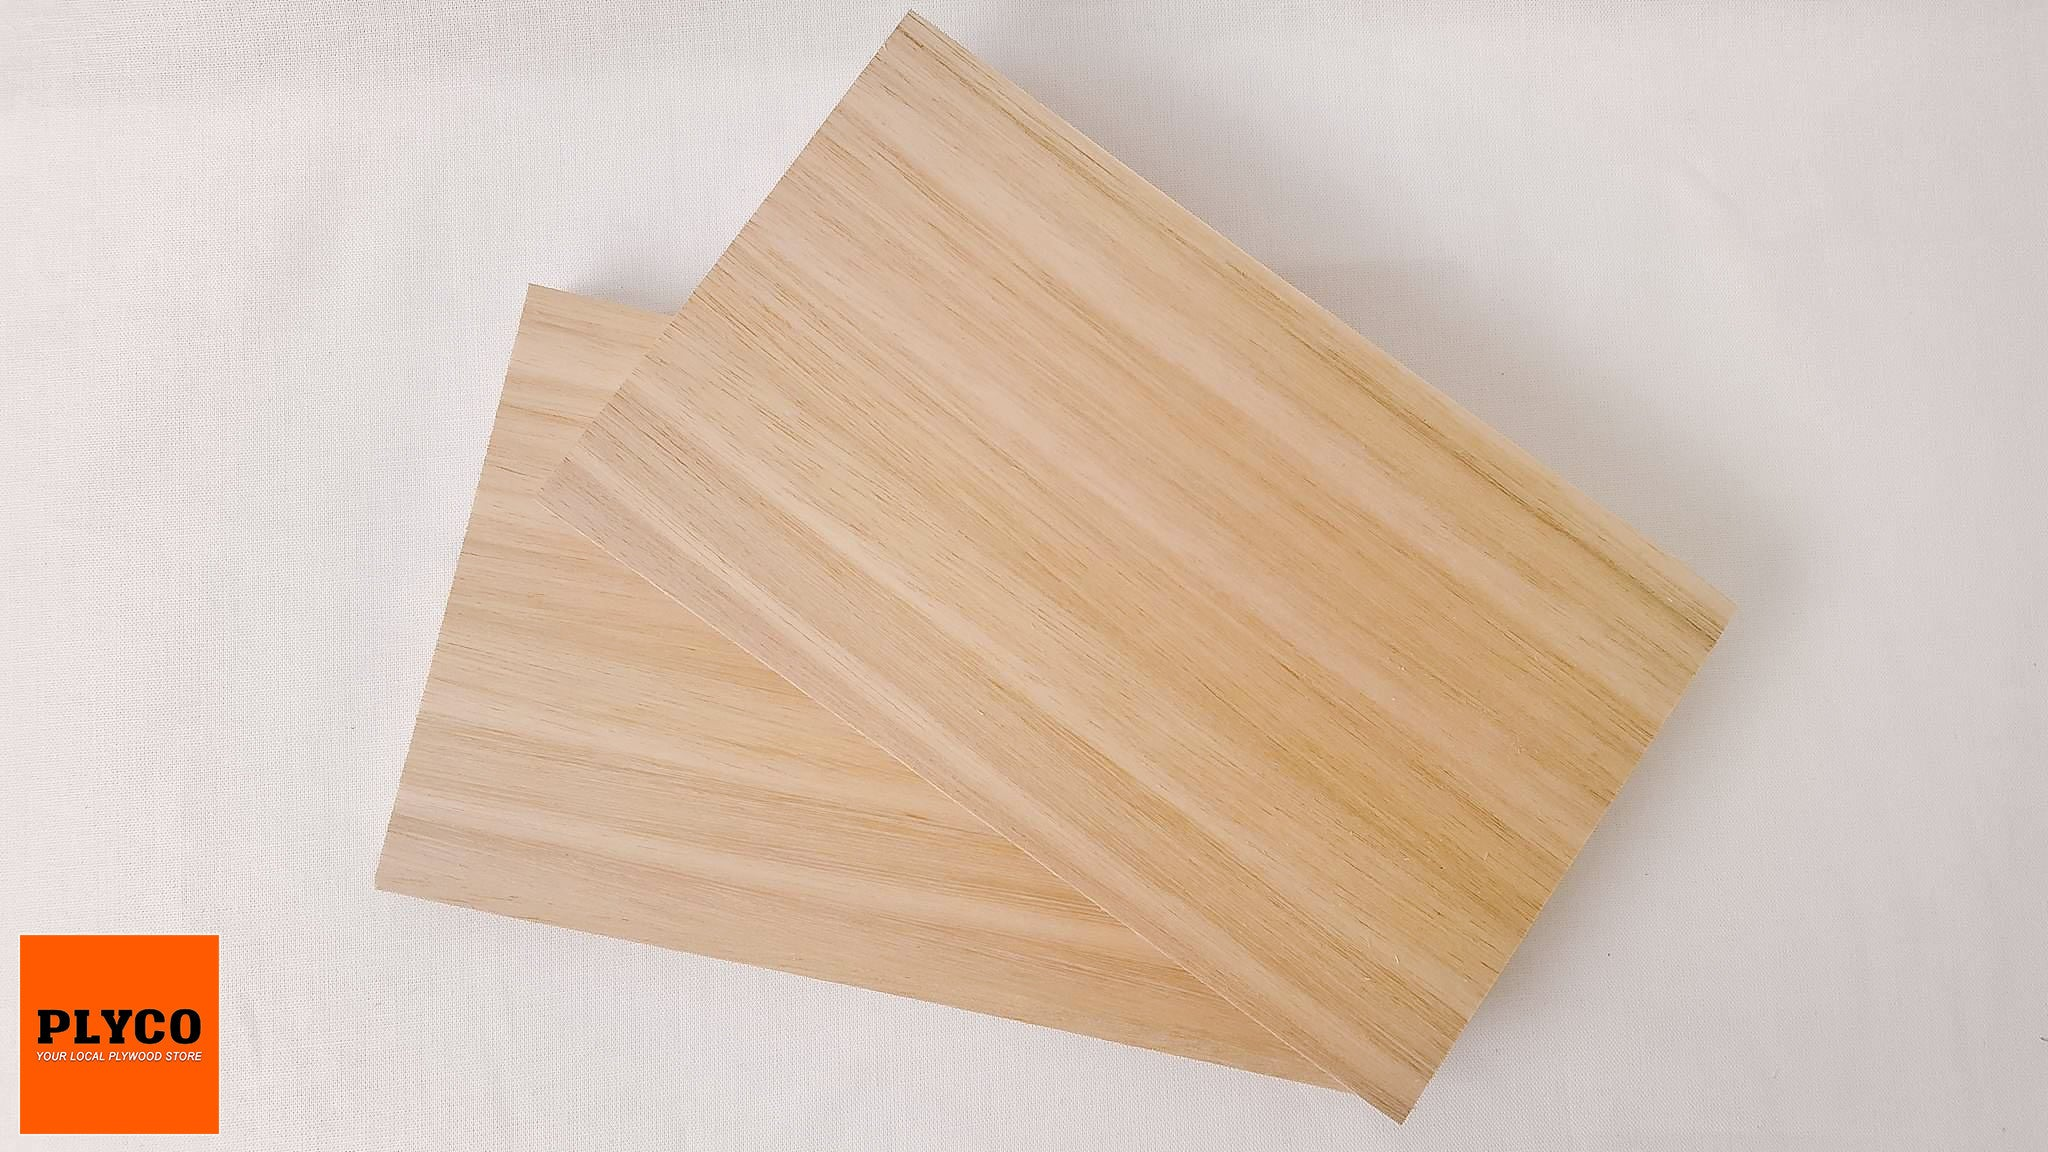 Eucalypt Laserply sheets available for delivery in Melbourne, Sydney and Australia wide